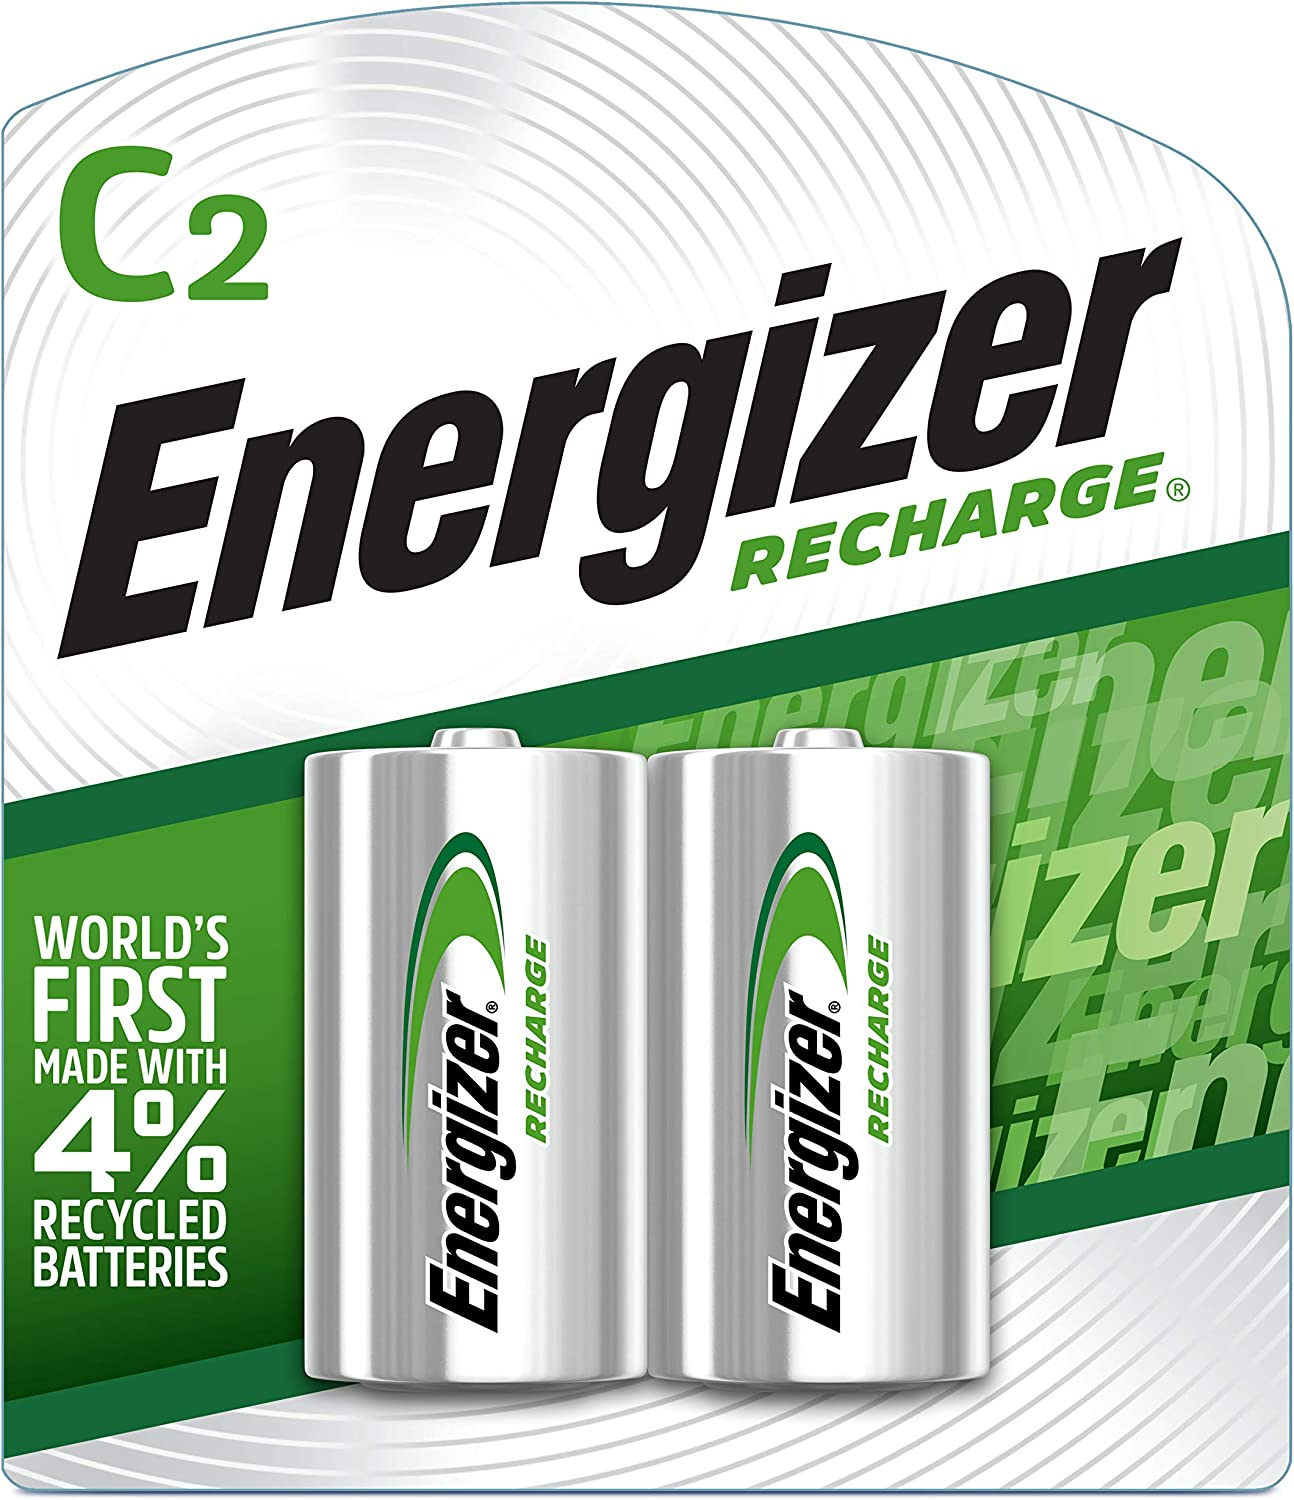 Energizer NH35BP-2 Precharged Recharg Battery, C, NiMh, PK2 Lighting, 2 Count (Pack of 1), Green and Silver: Electronics